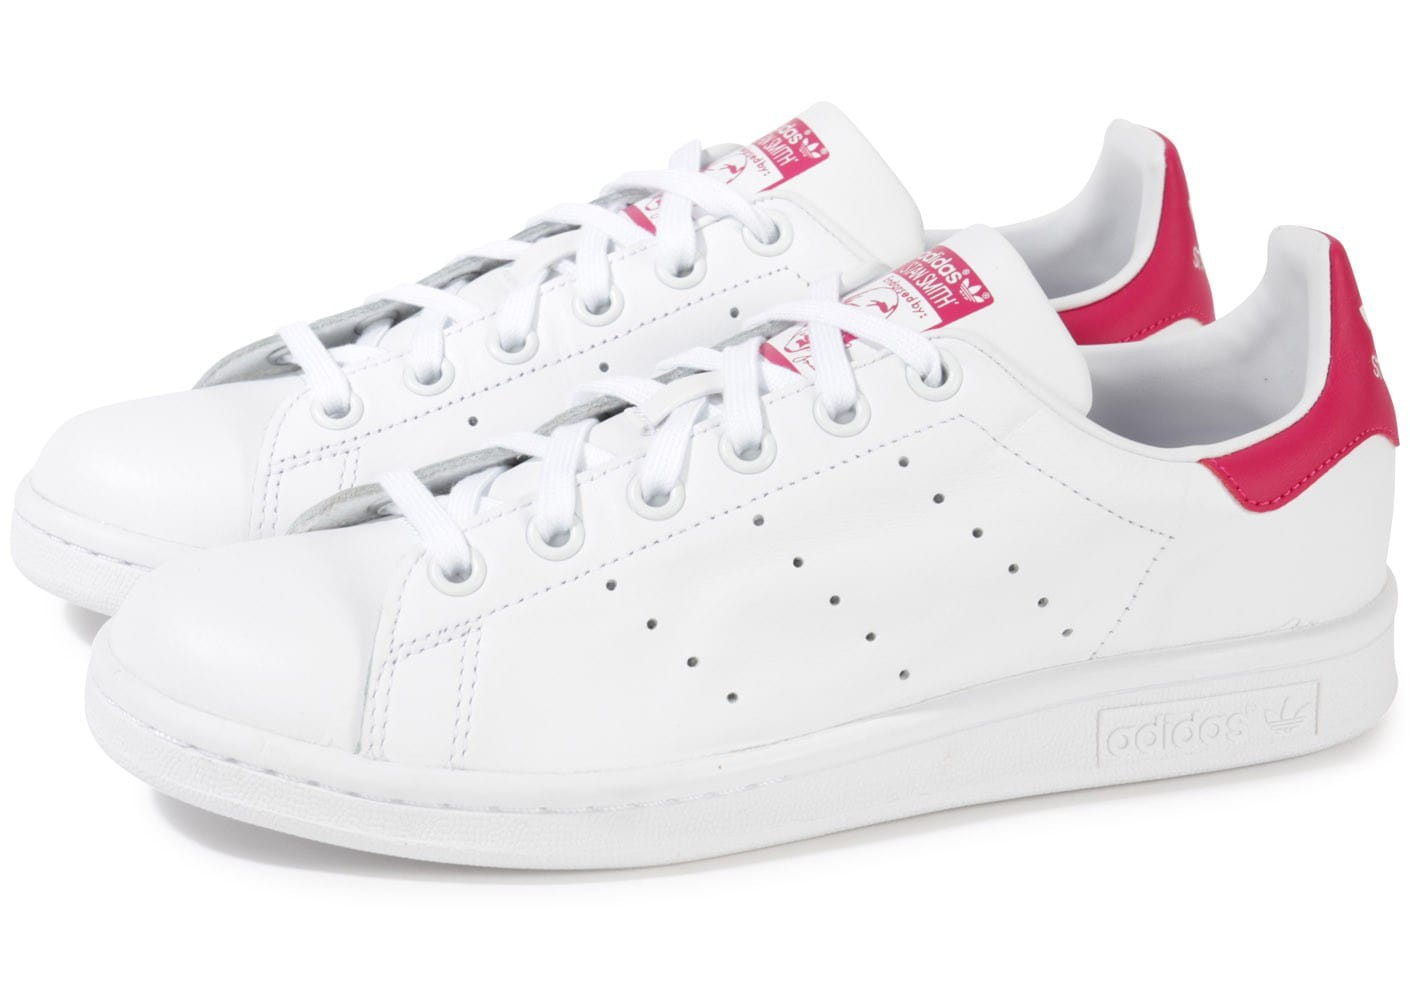 adidas stan smith femme blanche